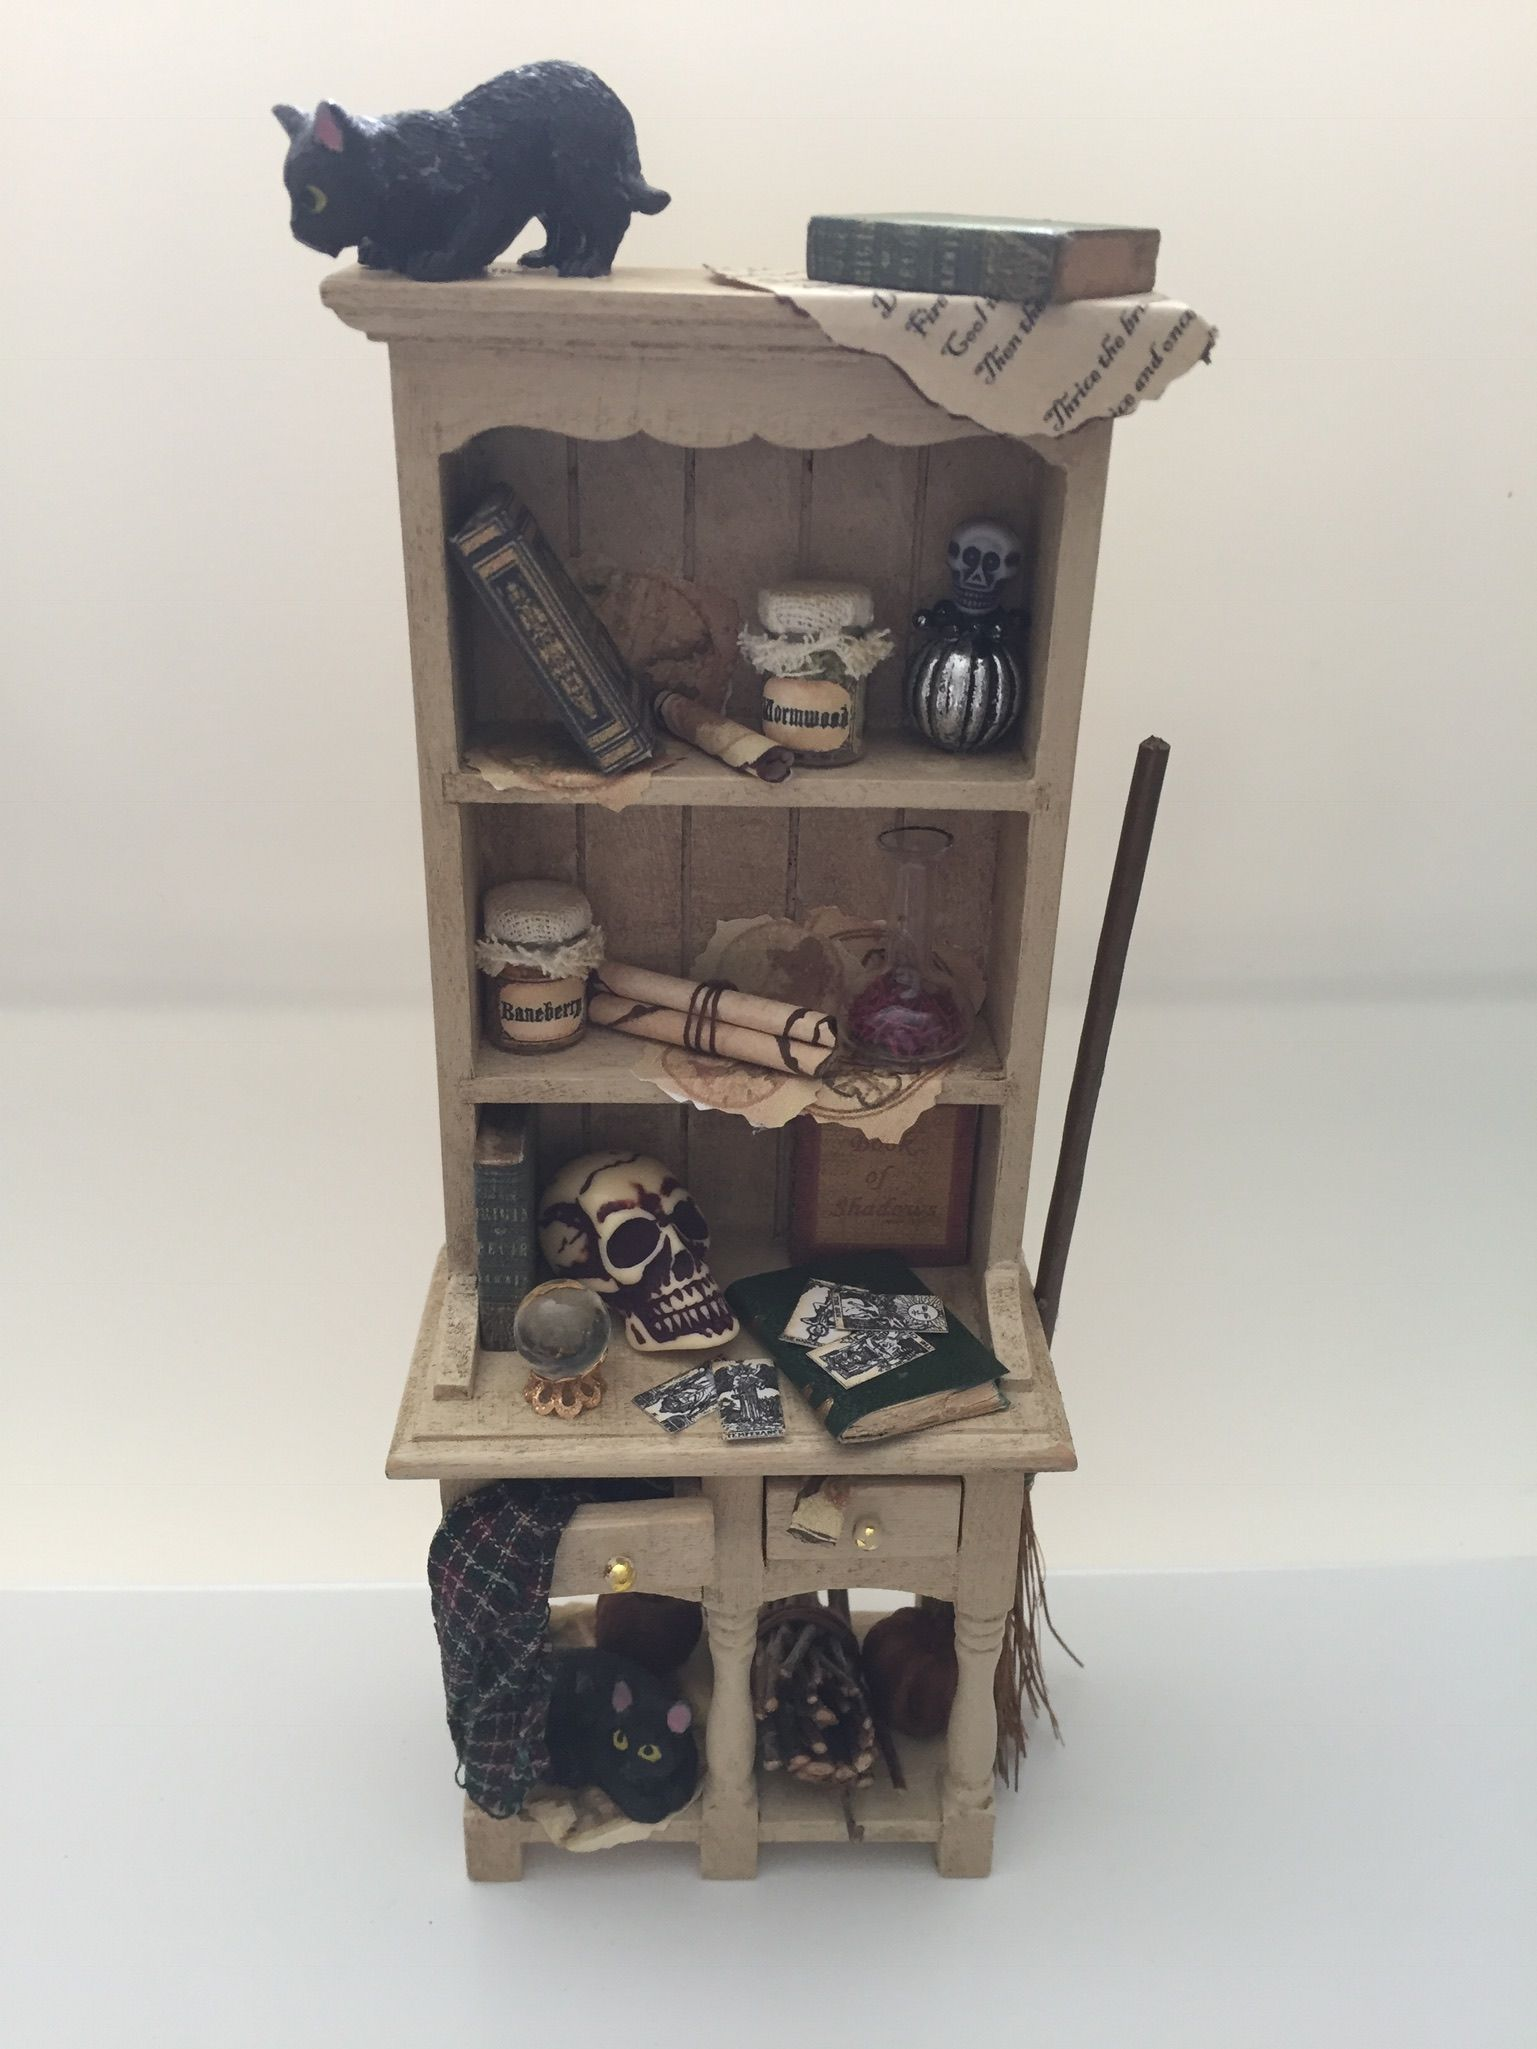 Pin By Melody Dillabough On Wicca   Bookcase, Shelves, Home